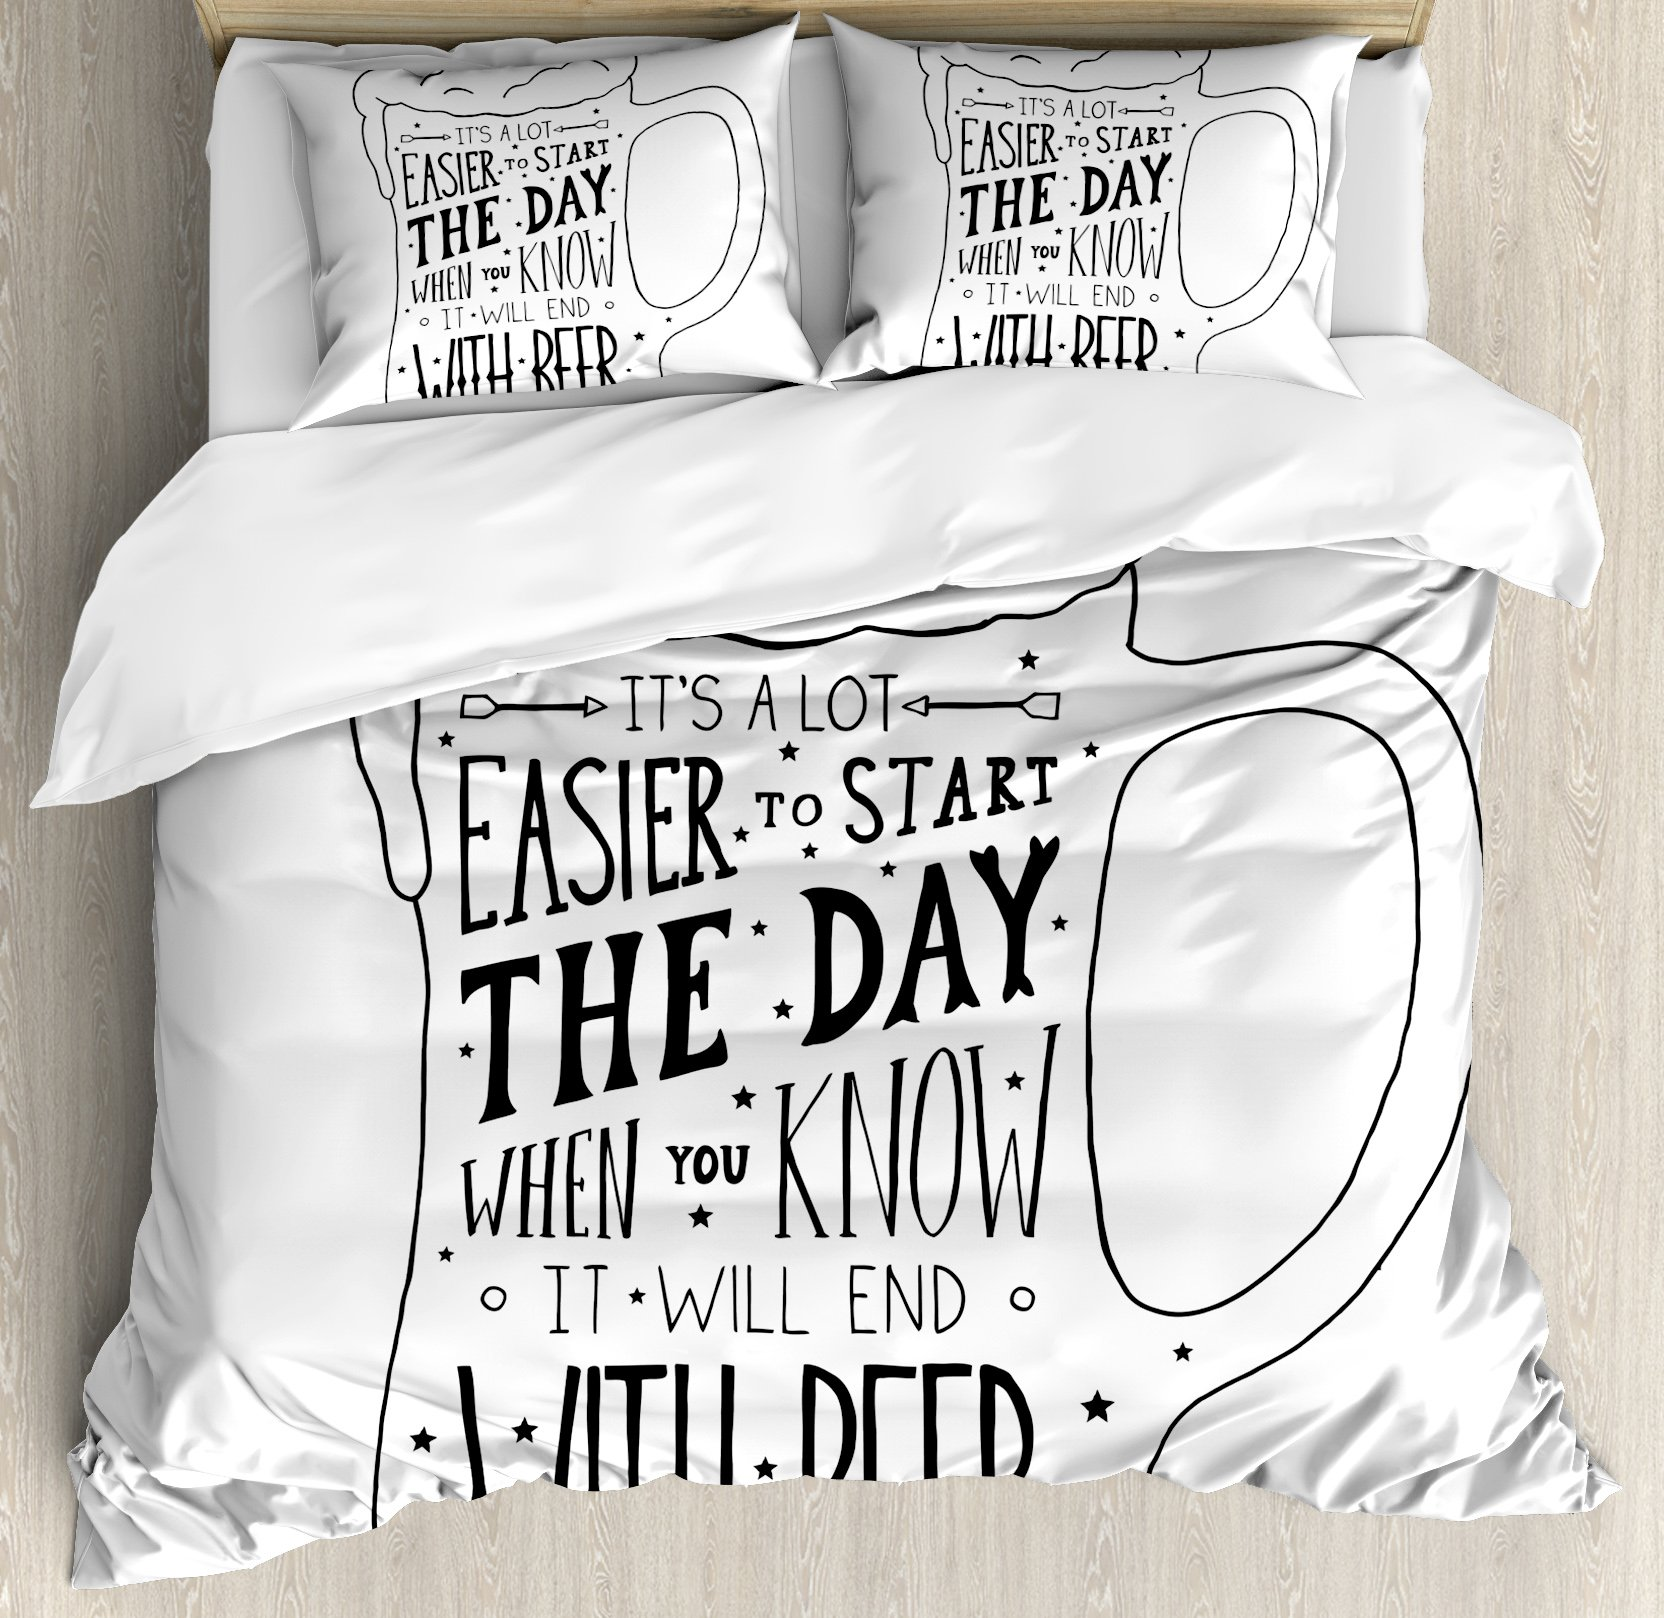 Man Cave Decor King Size Duvet Cover Set by Ambesonne, Typographic Art with Humorous Quotation Beverage Pub Bar Glass Stars, Decorative 3 Piece Bedding Set with 2 Pillow Shams, Black and White